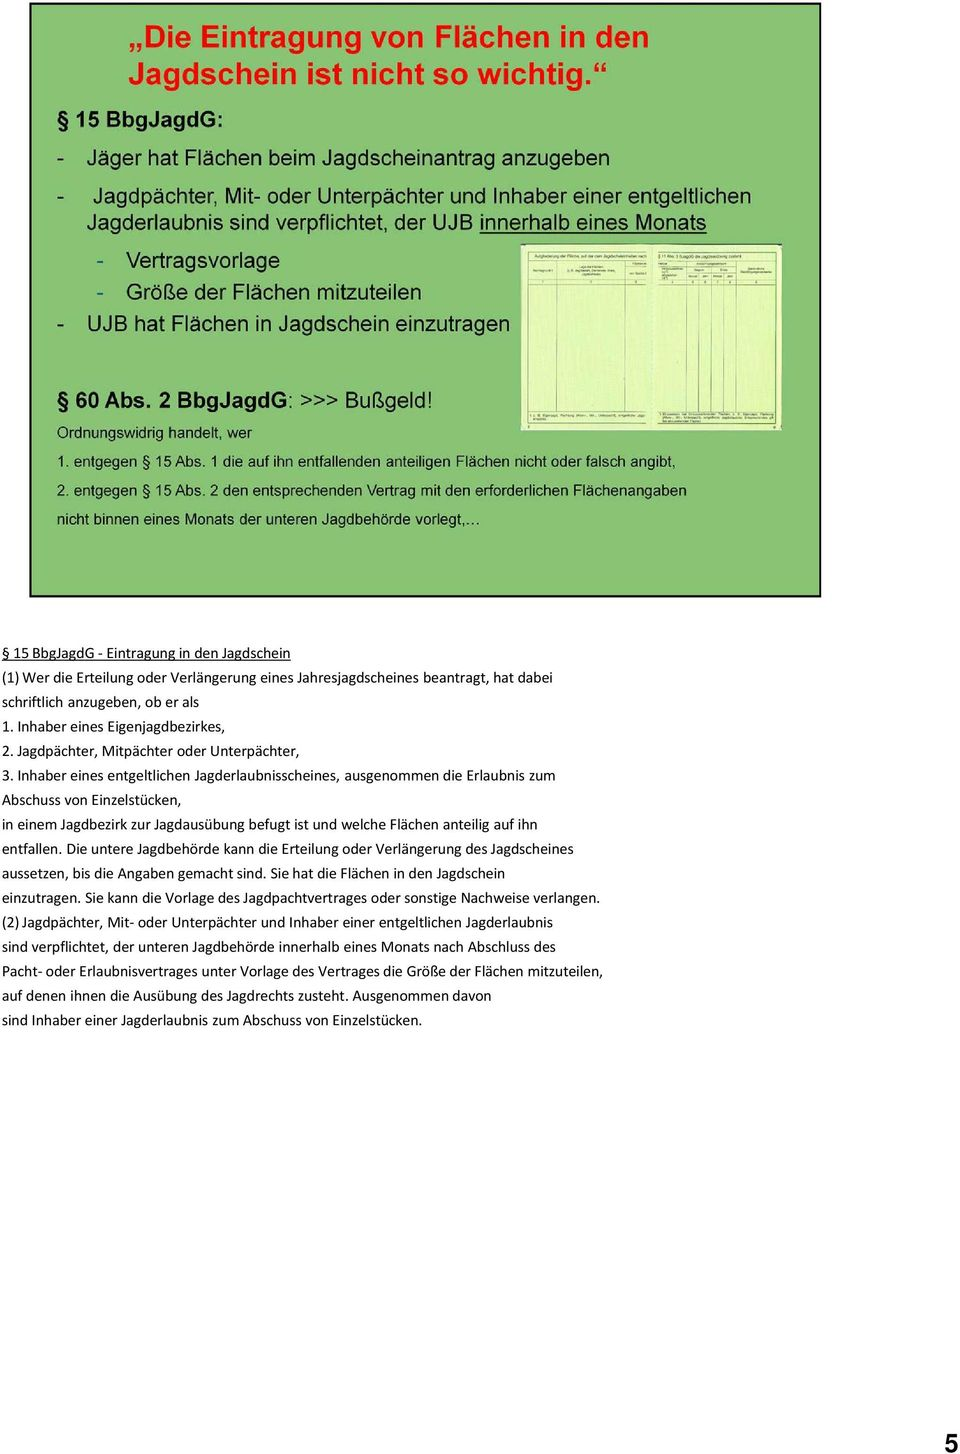 Nett Antenuptale Vertragsvorlage Ideen - Entry Level Resume Vorlagen ...